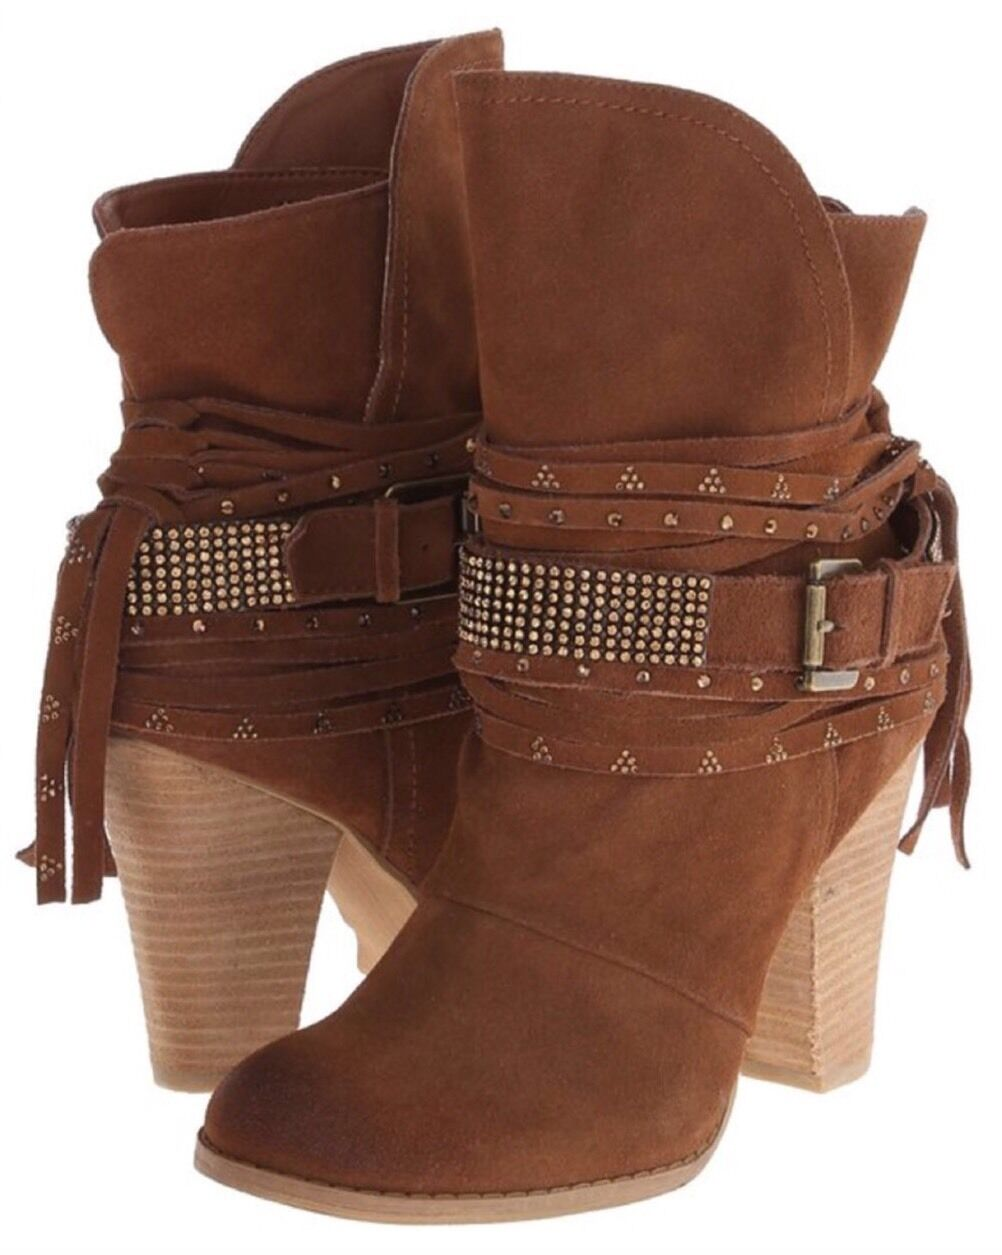 NEW Suede Naughty Monkey Santana Anna Suede NEW Boots Size 10 Rhinestone Bling 1eef4d